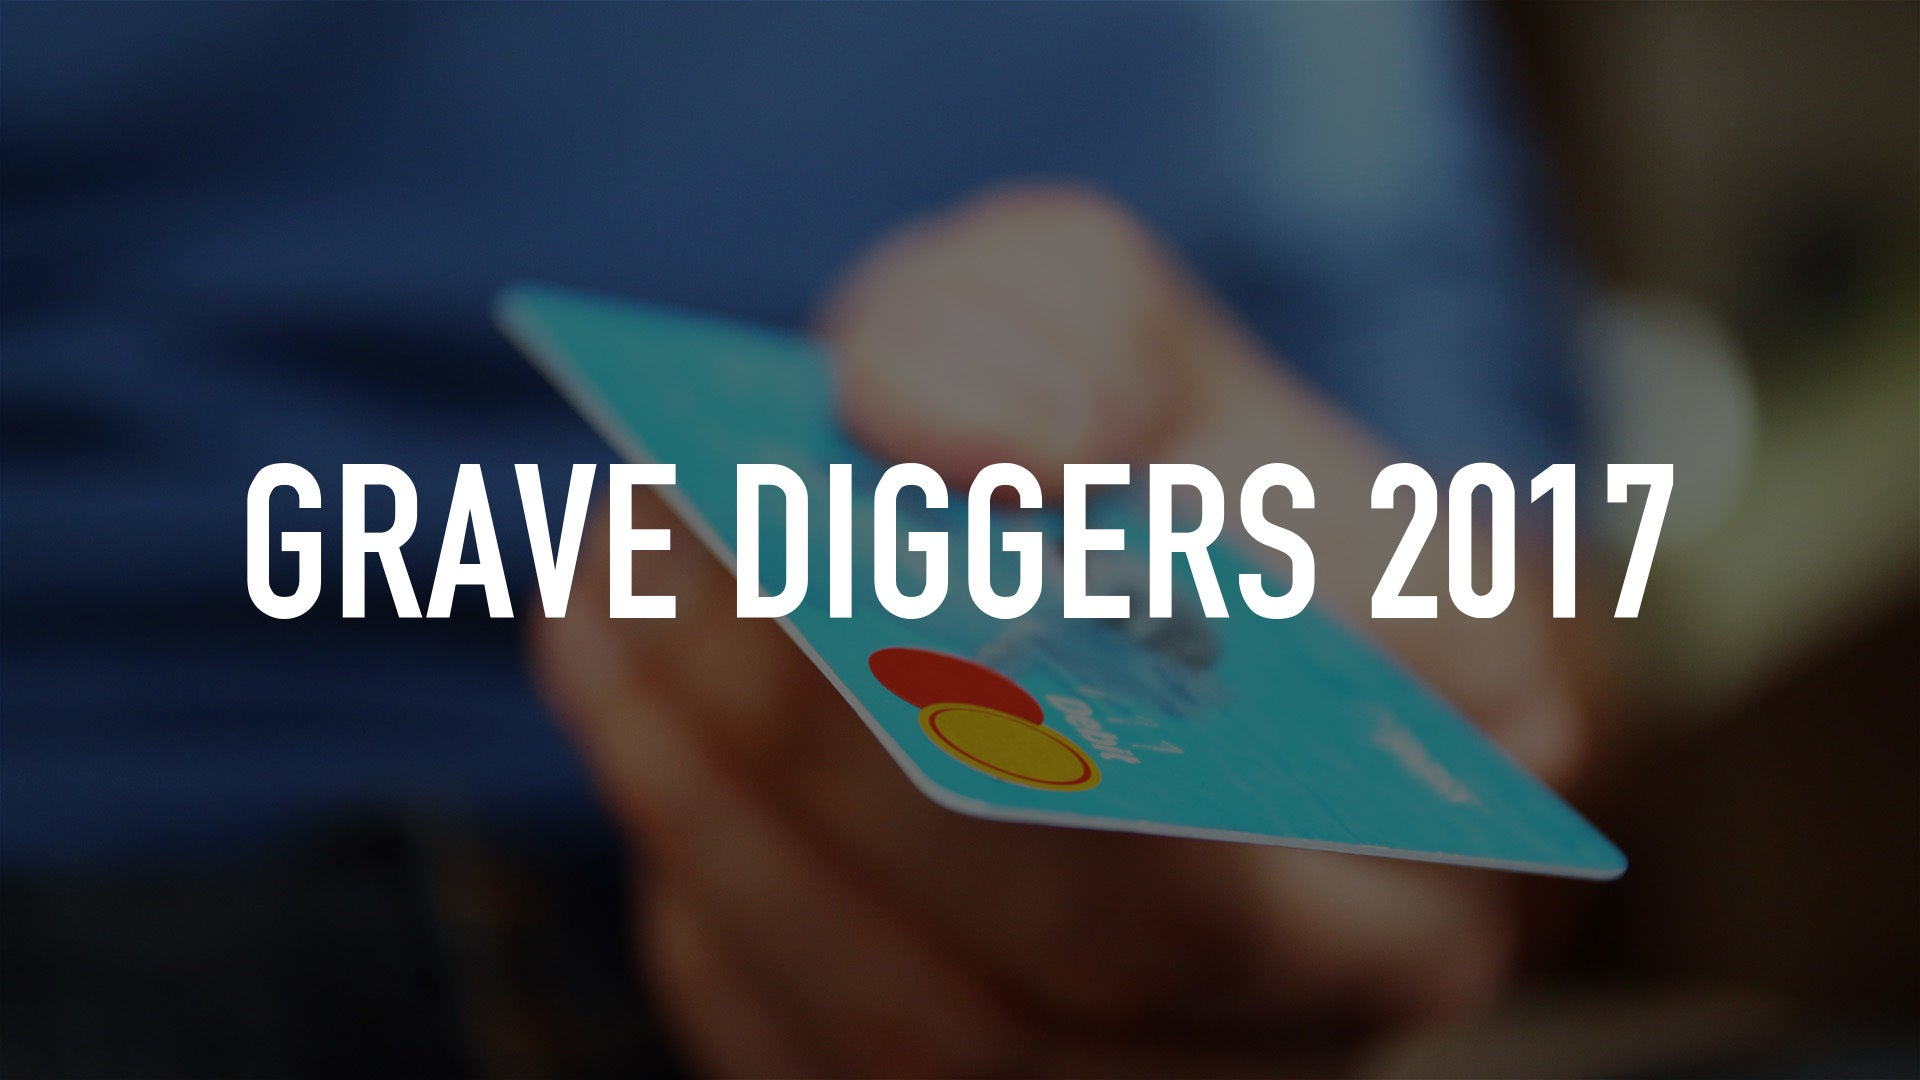 Grave Diggers 2017